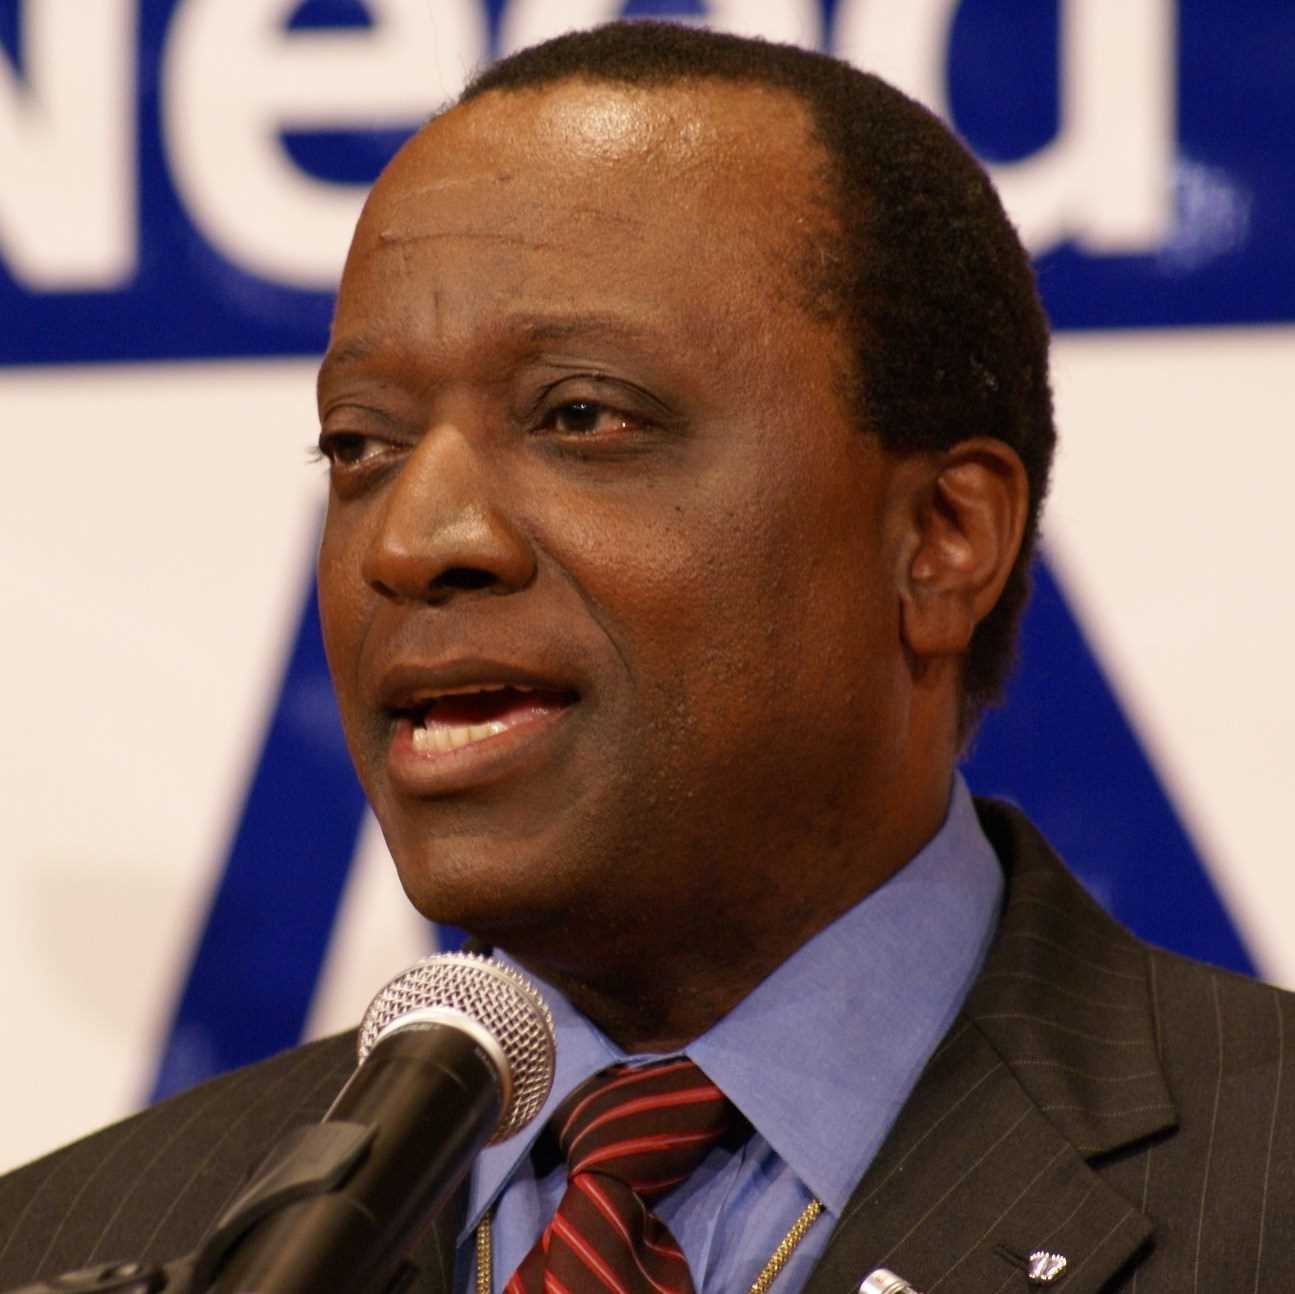 Alan Keyes, Education Speaker